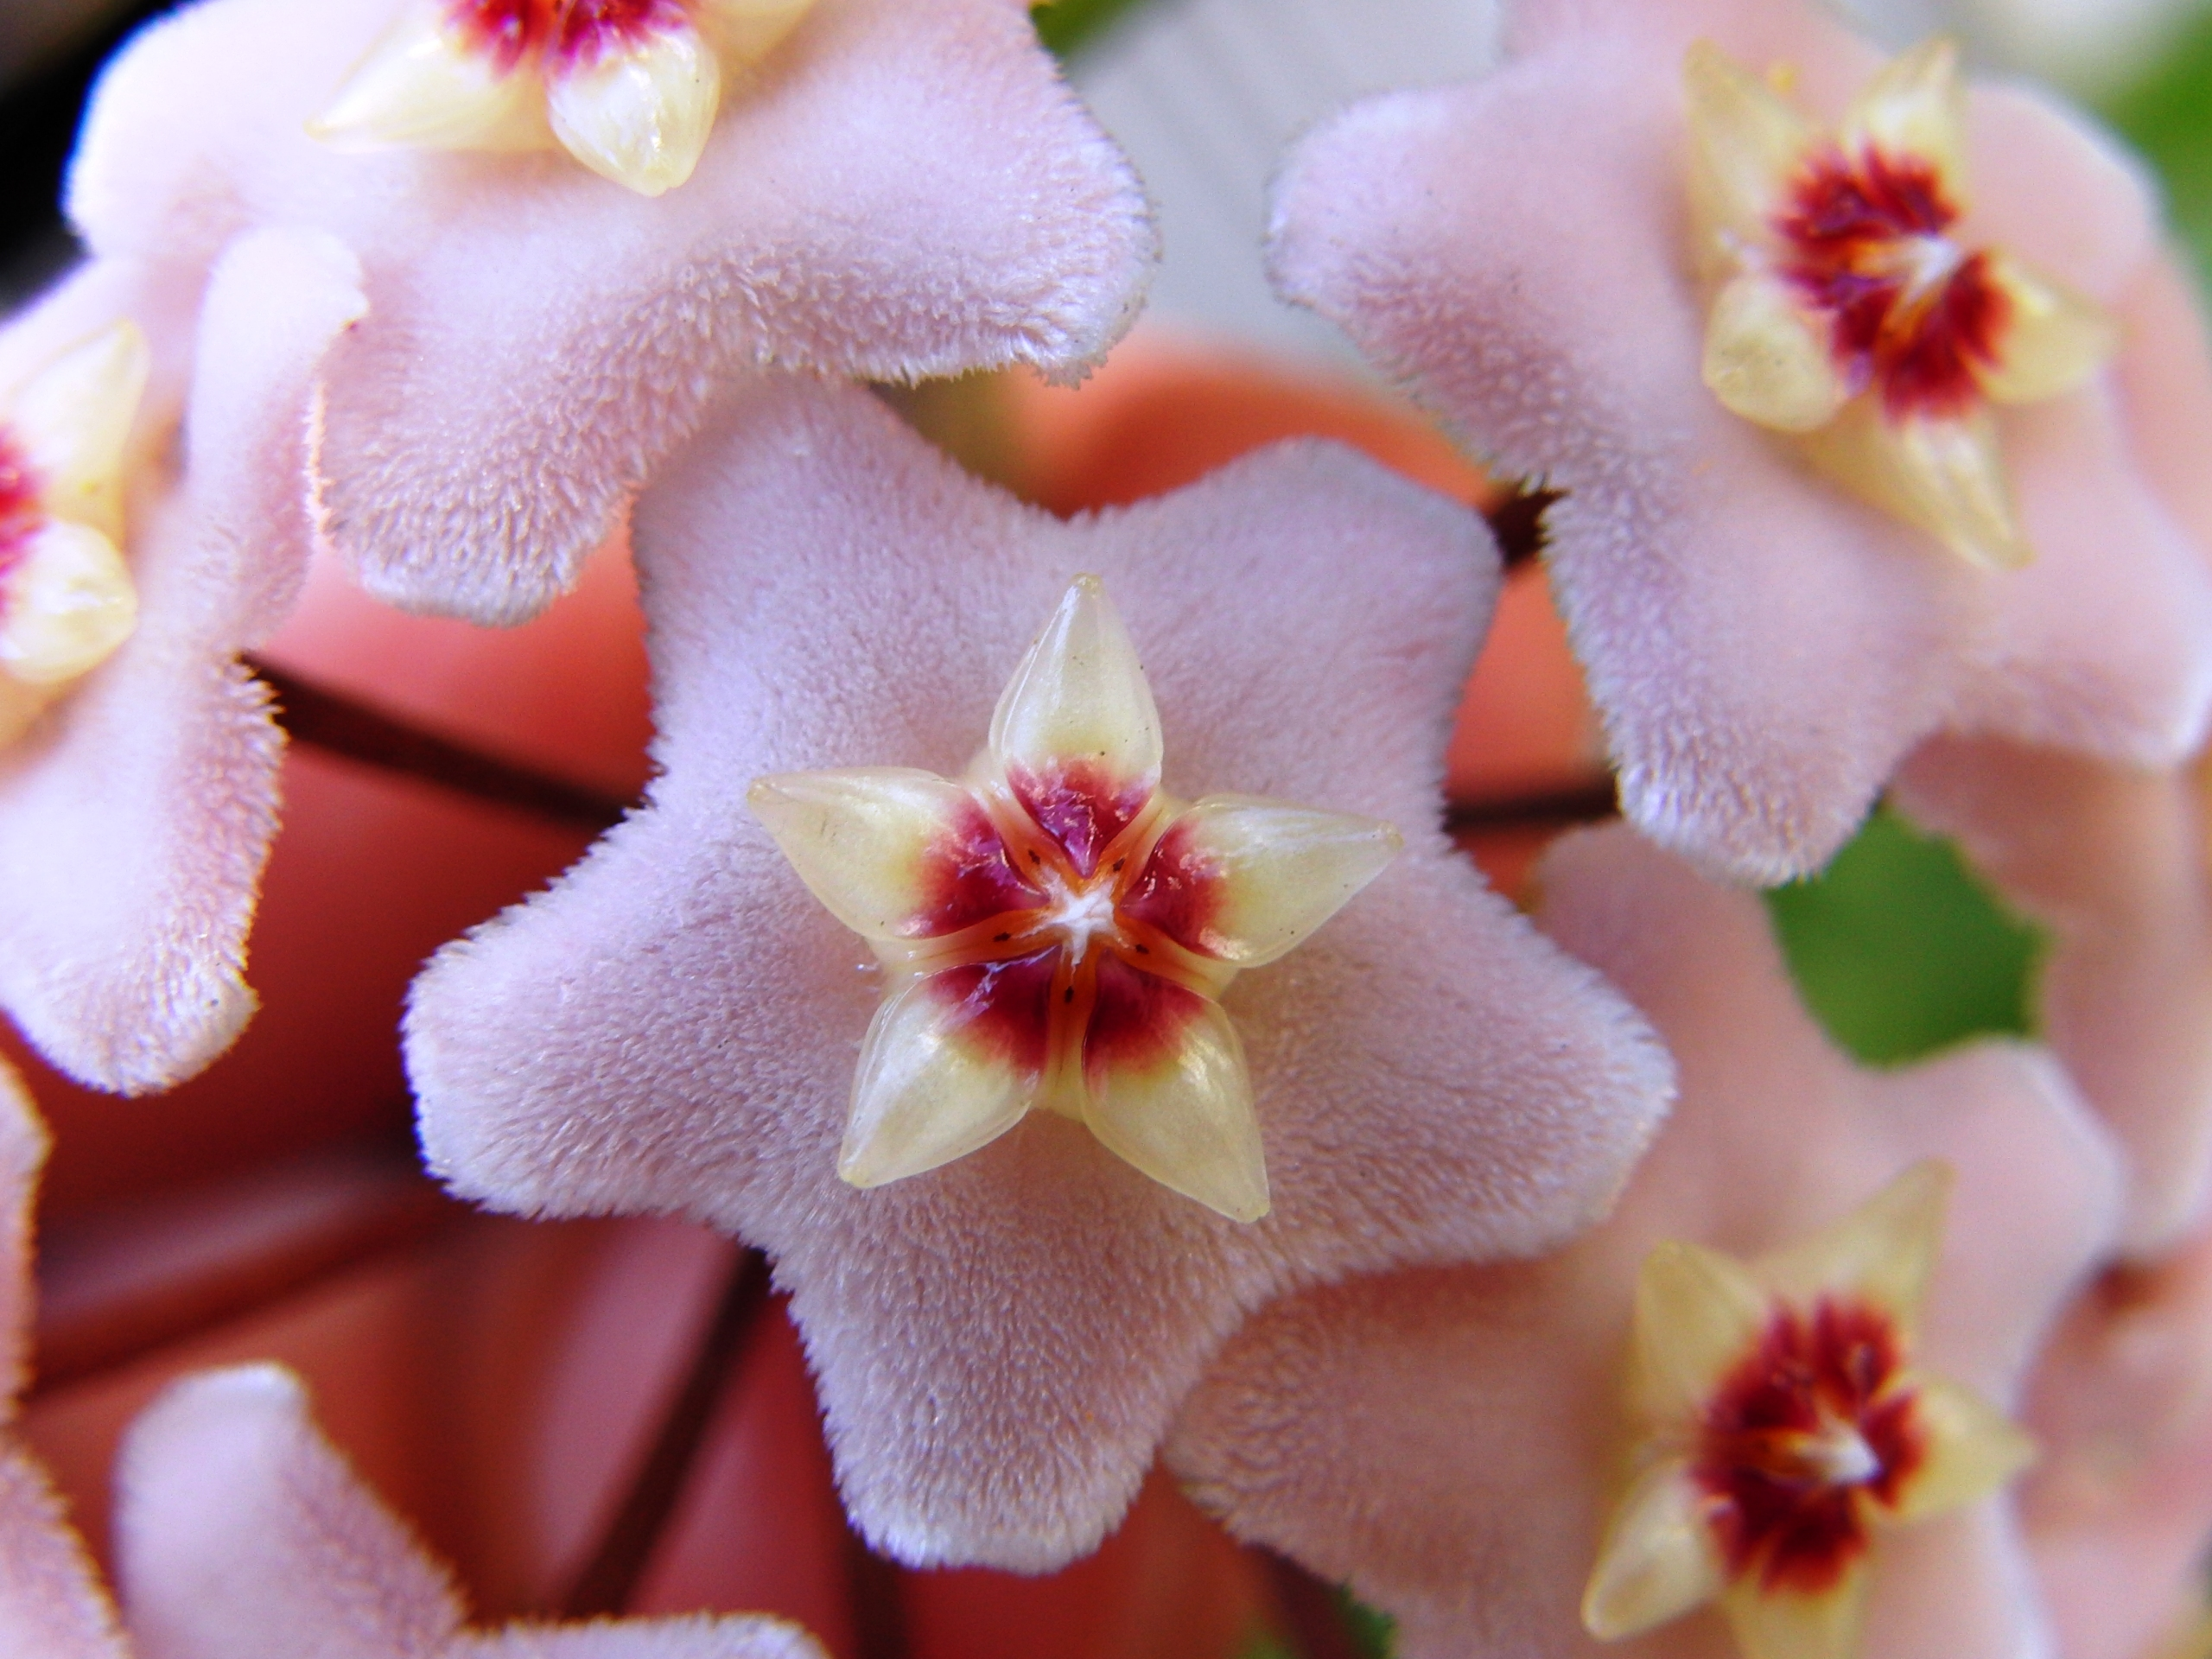 click to free download the wallpaper--Amazing Landscape of the World, Hoya Carnosa in Bloom, Star Style